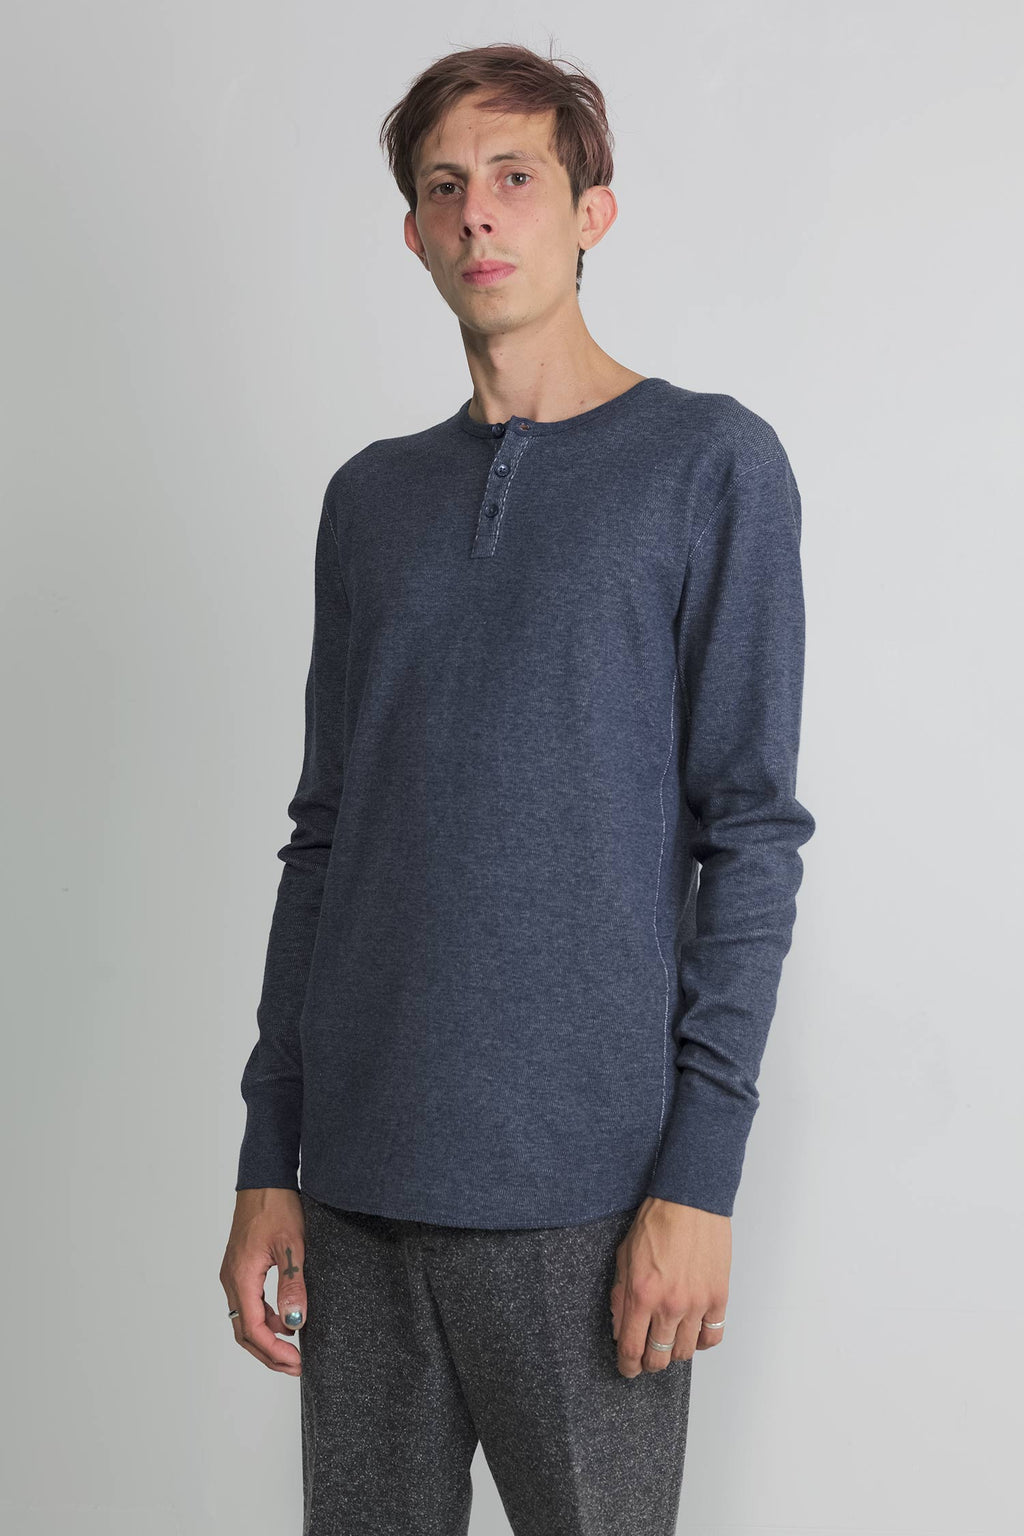 mesh thermal henley in navy 04